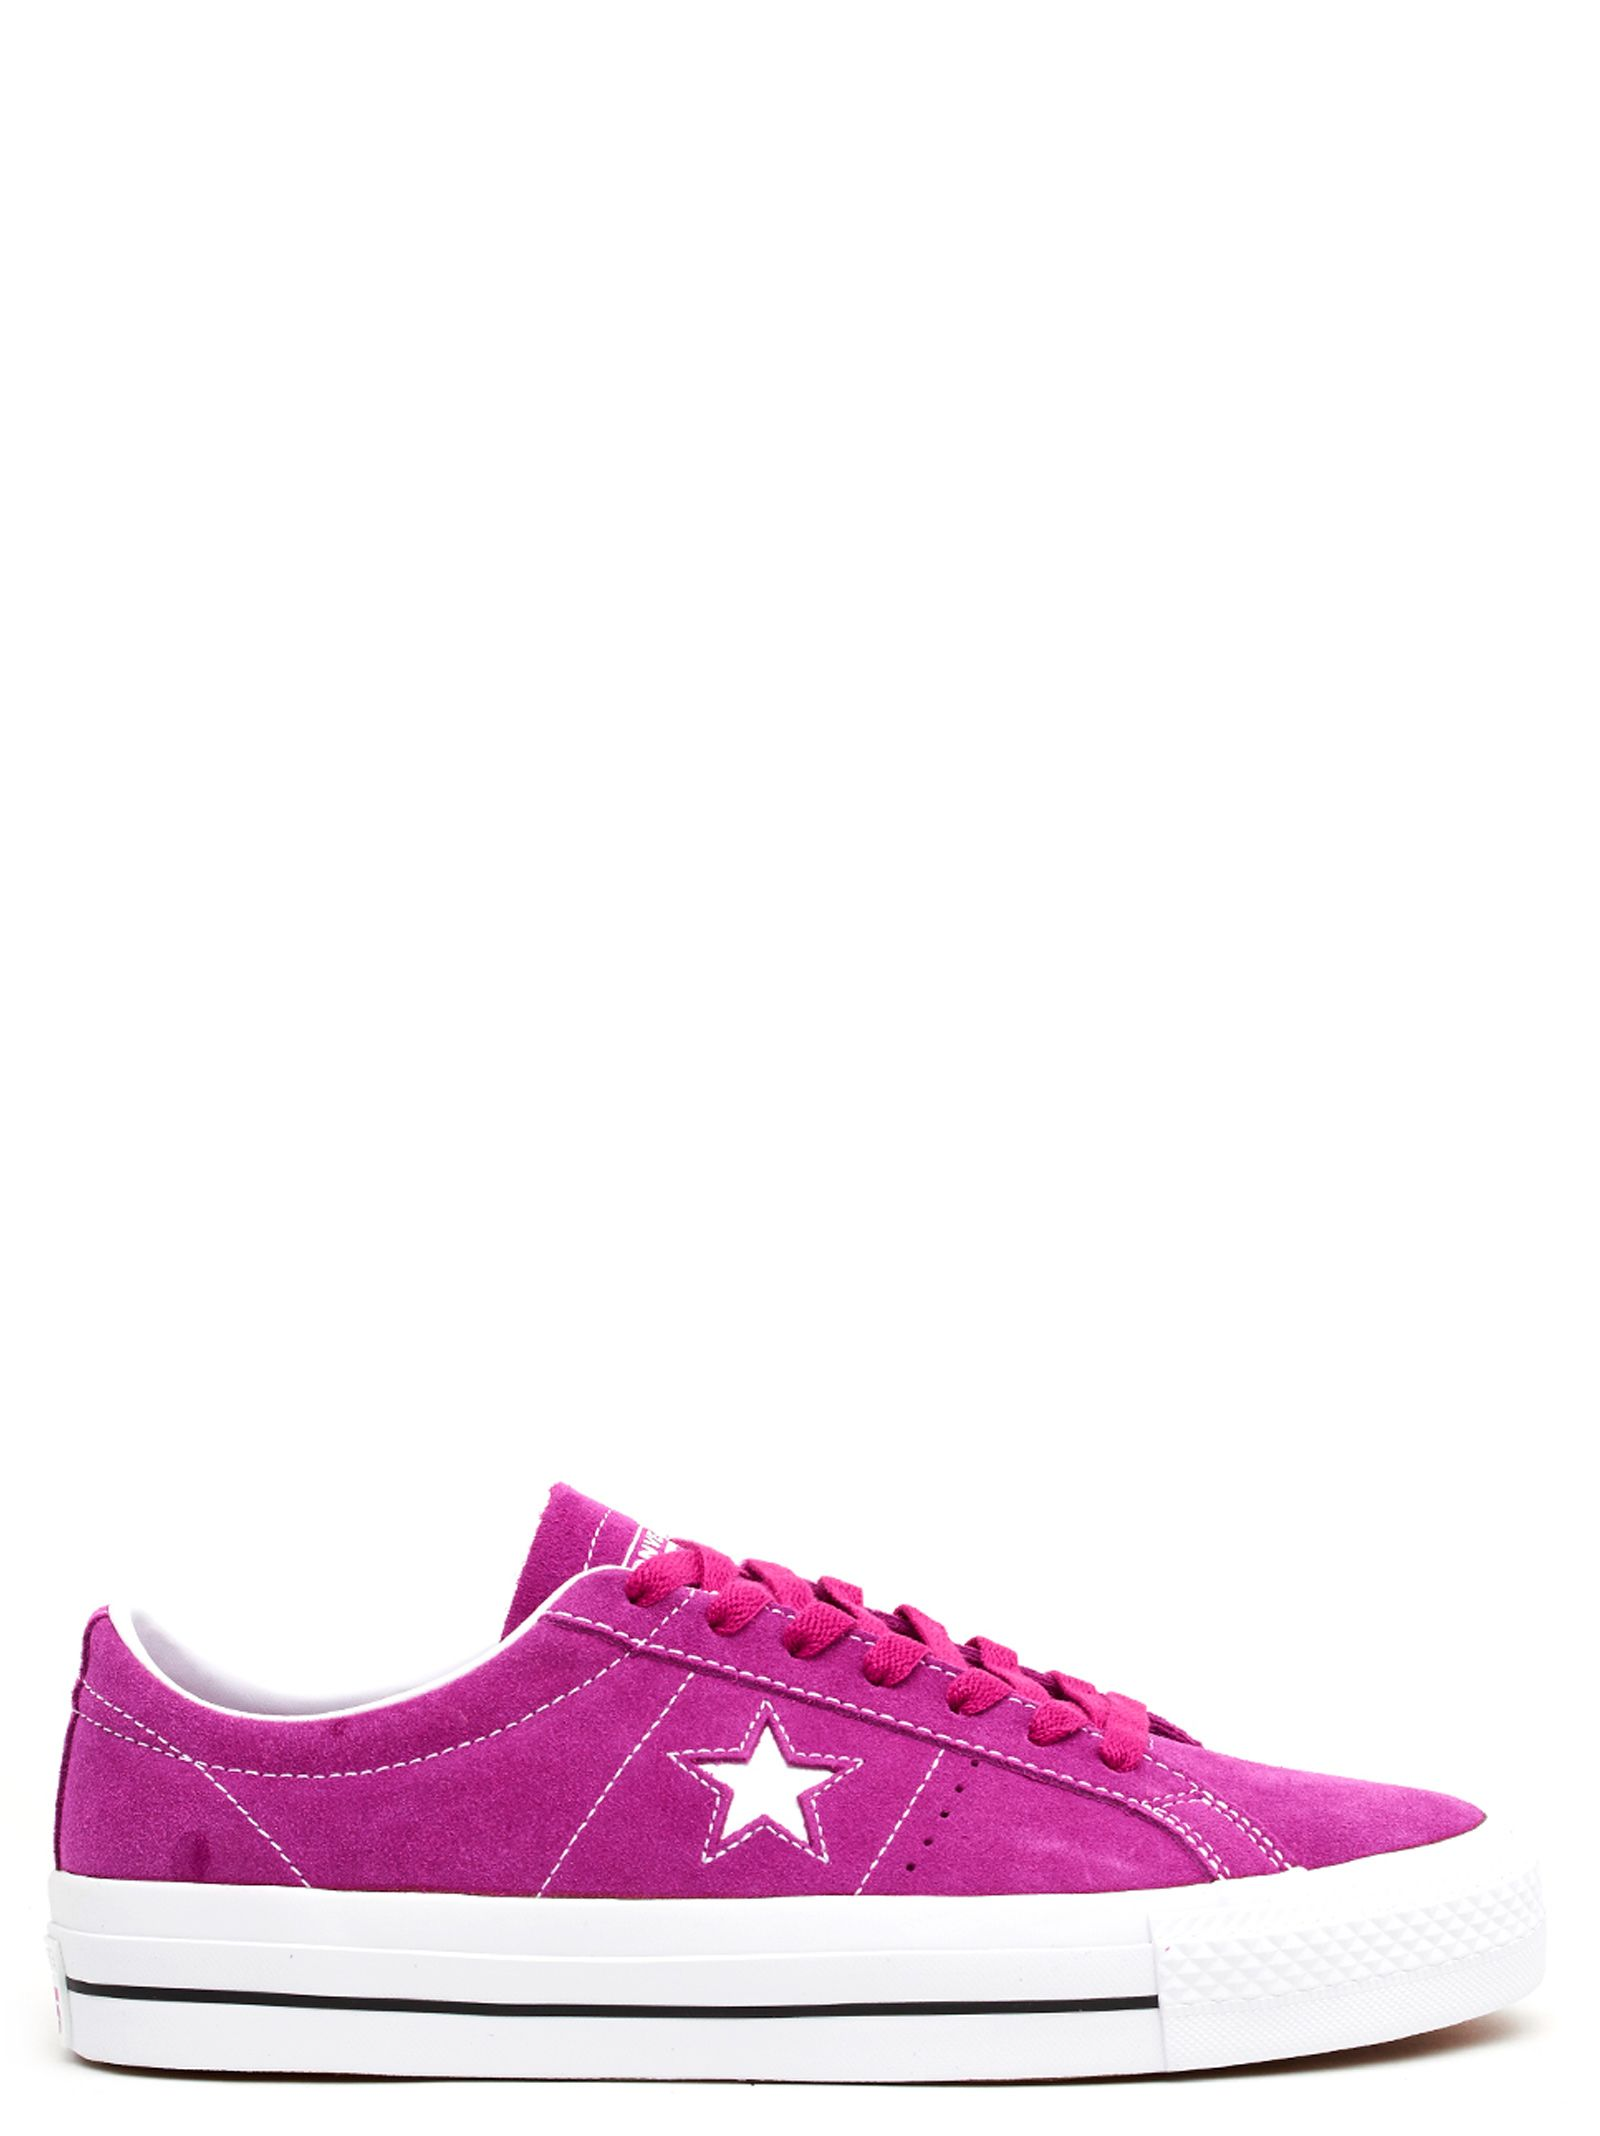 bdf8fc90b257b8 Converse Converse  one Star Pro Ox  Shoes - Purple - 10747987